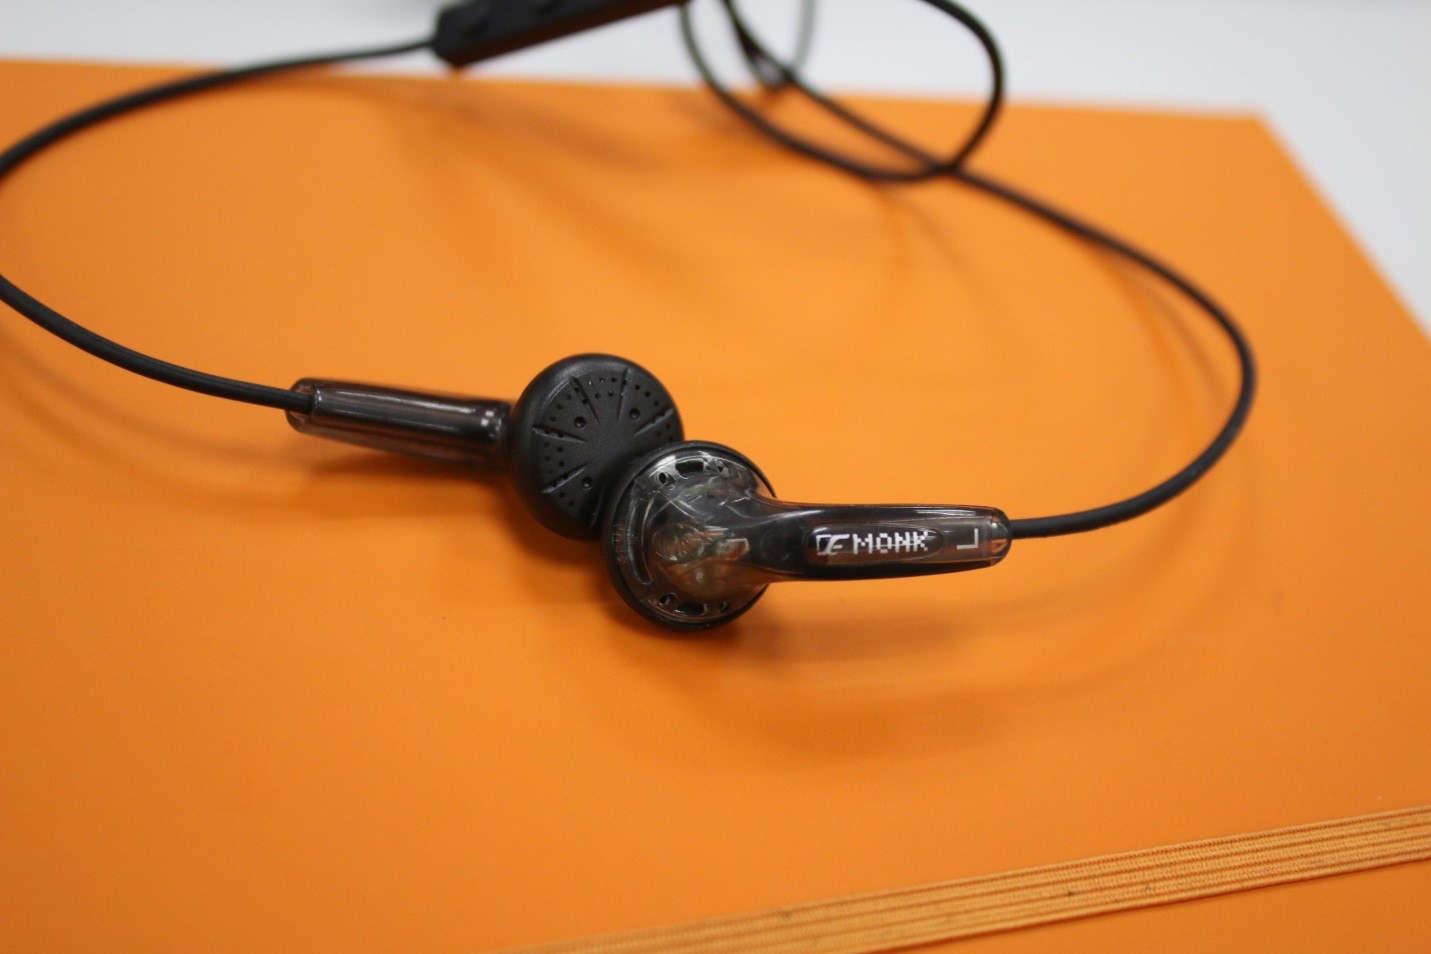 VE Monk Plus Review: Earphones you can have fun with